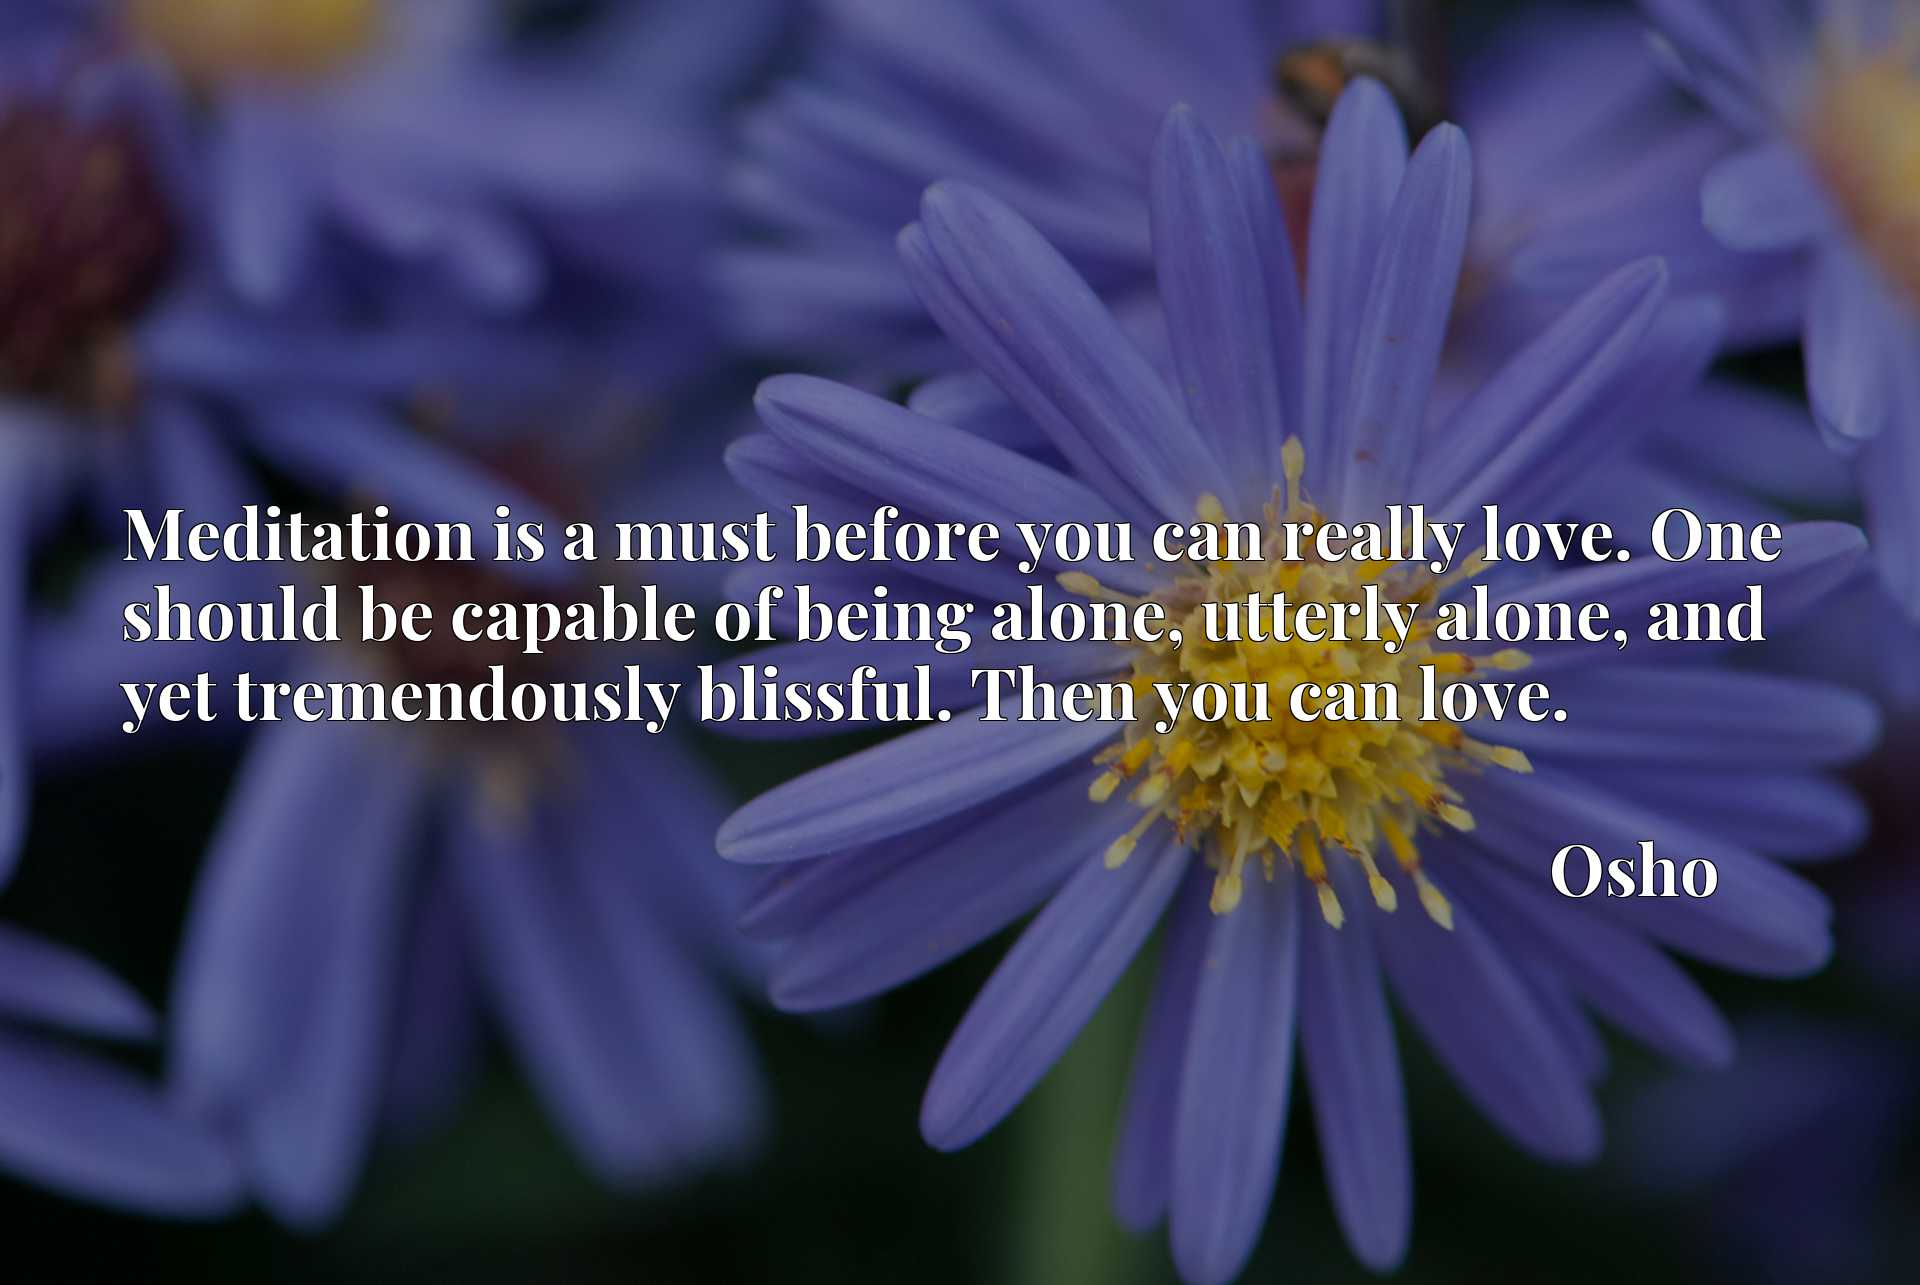 Meditation is a must before you can really love. One should be capable of being alone, utterly alone, and yet tremendously blissful. Then you can love.